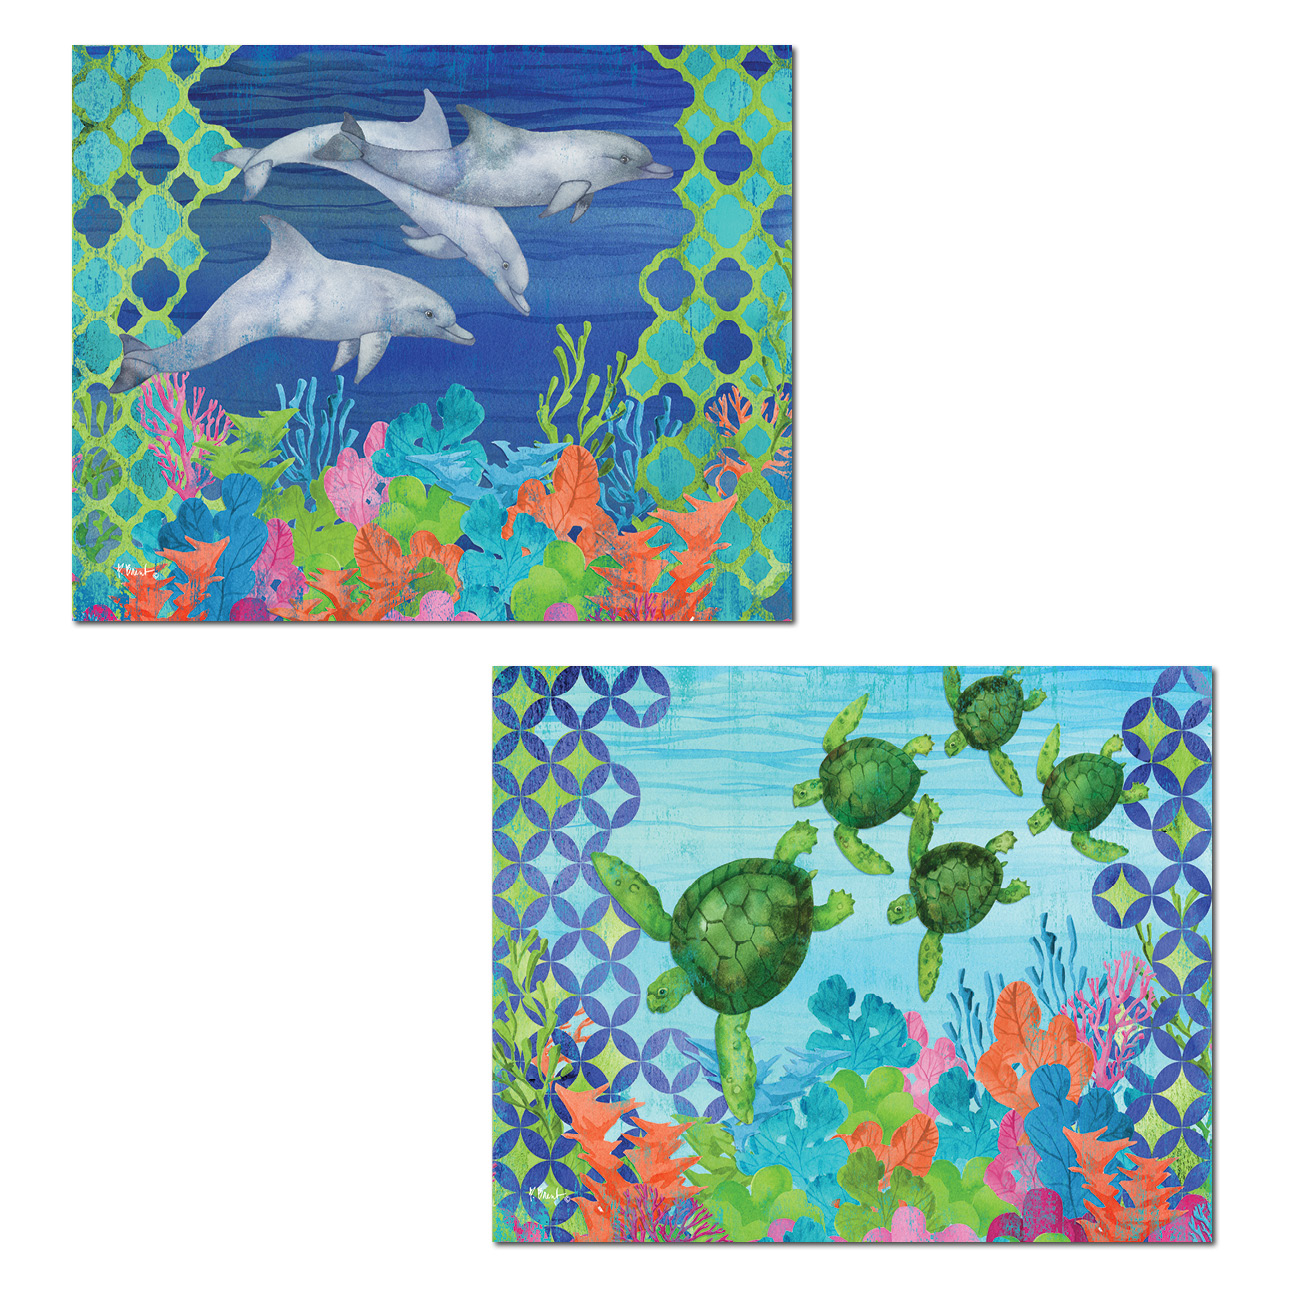 Beautiful Watercolor-Style Under Water Dolphin and Turtle Poster Prints; Coastal Decor; Two 14x11in Poster Prints